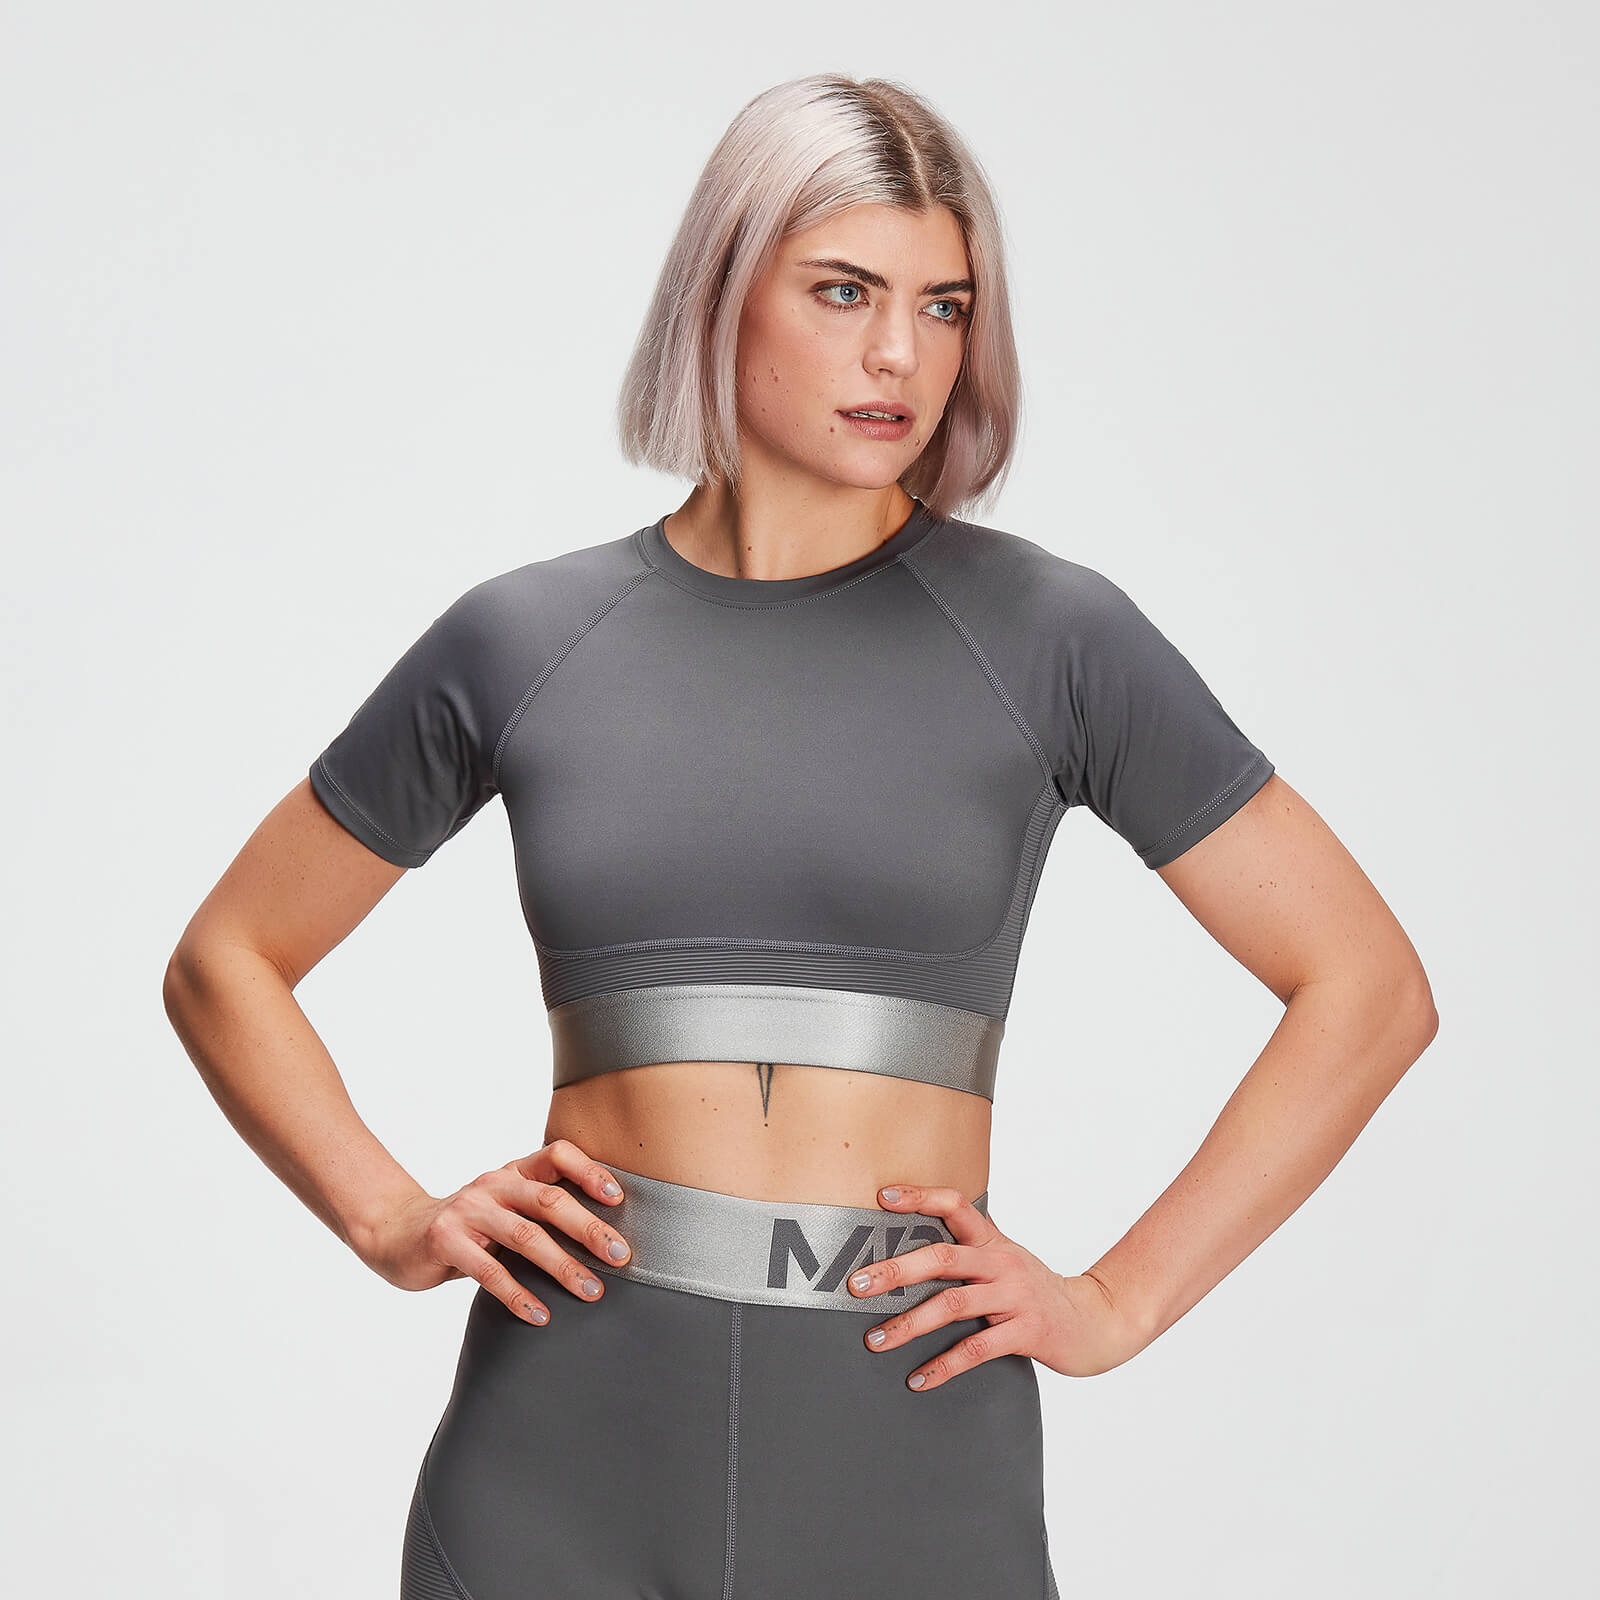 Crop top texturé MP Adapt pour femmes – Carbone - S